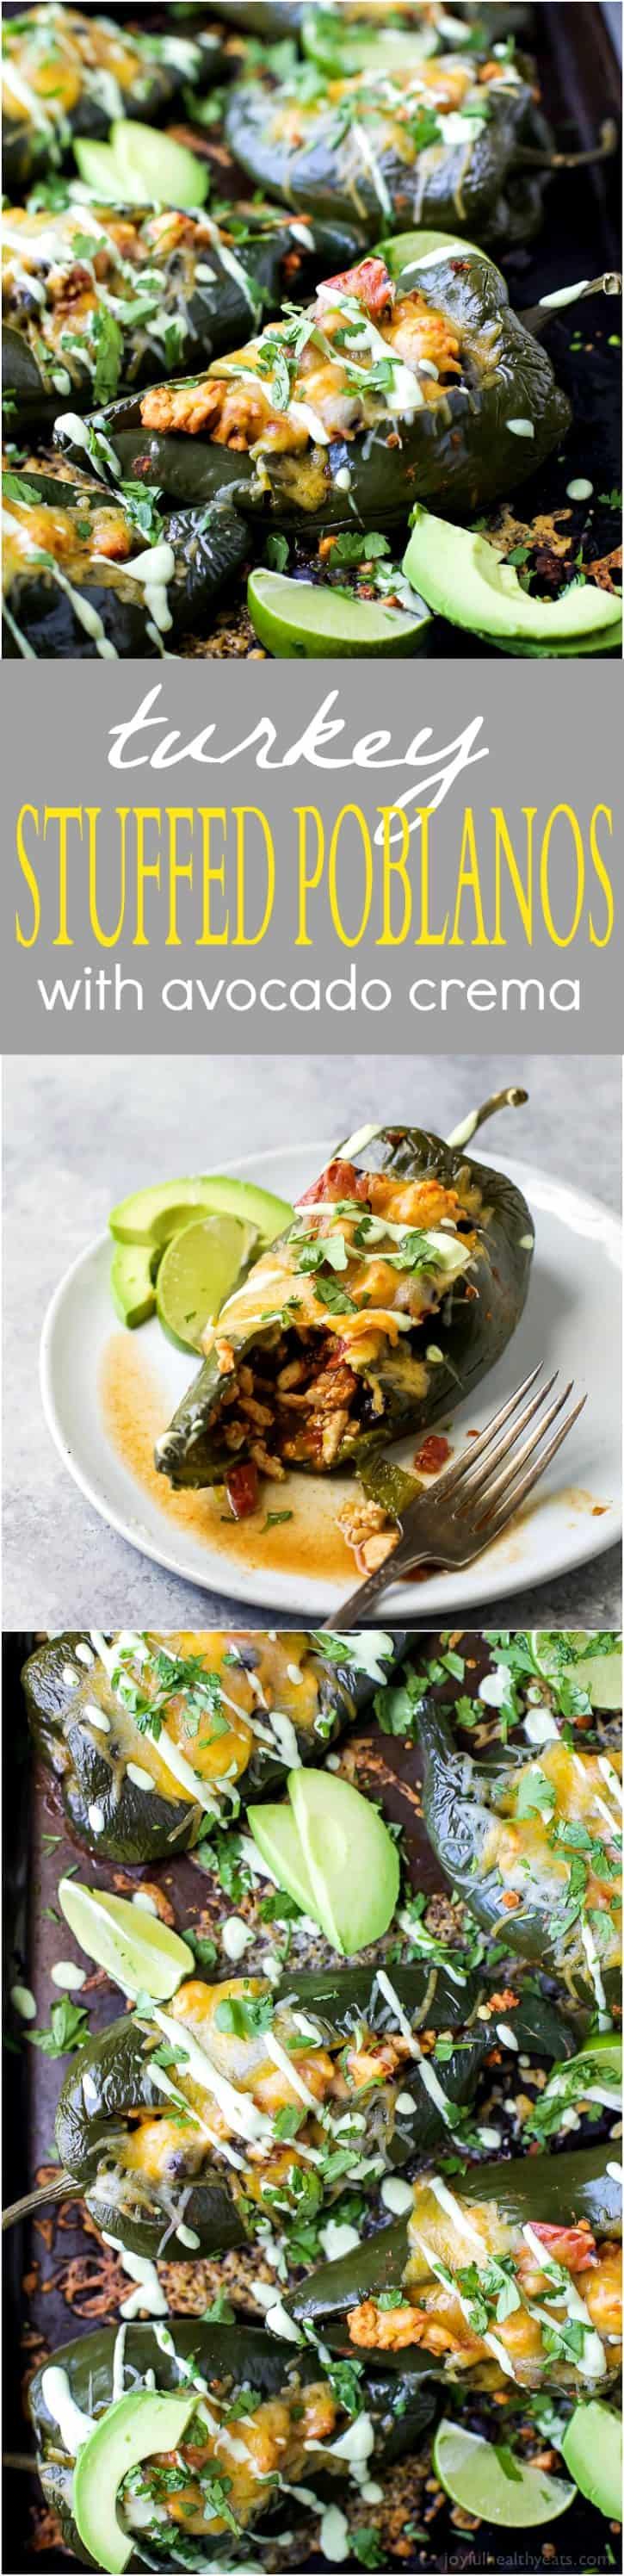 Turkey Stuffed Poblanos filled with fire roasted tomatoes and black beans then topped with melted cheese and an Avocado Crema to die for. A gluten free meal that will quickly become your families favorite!